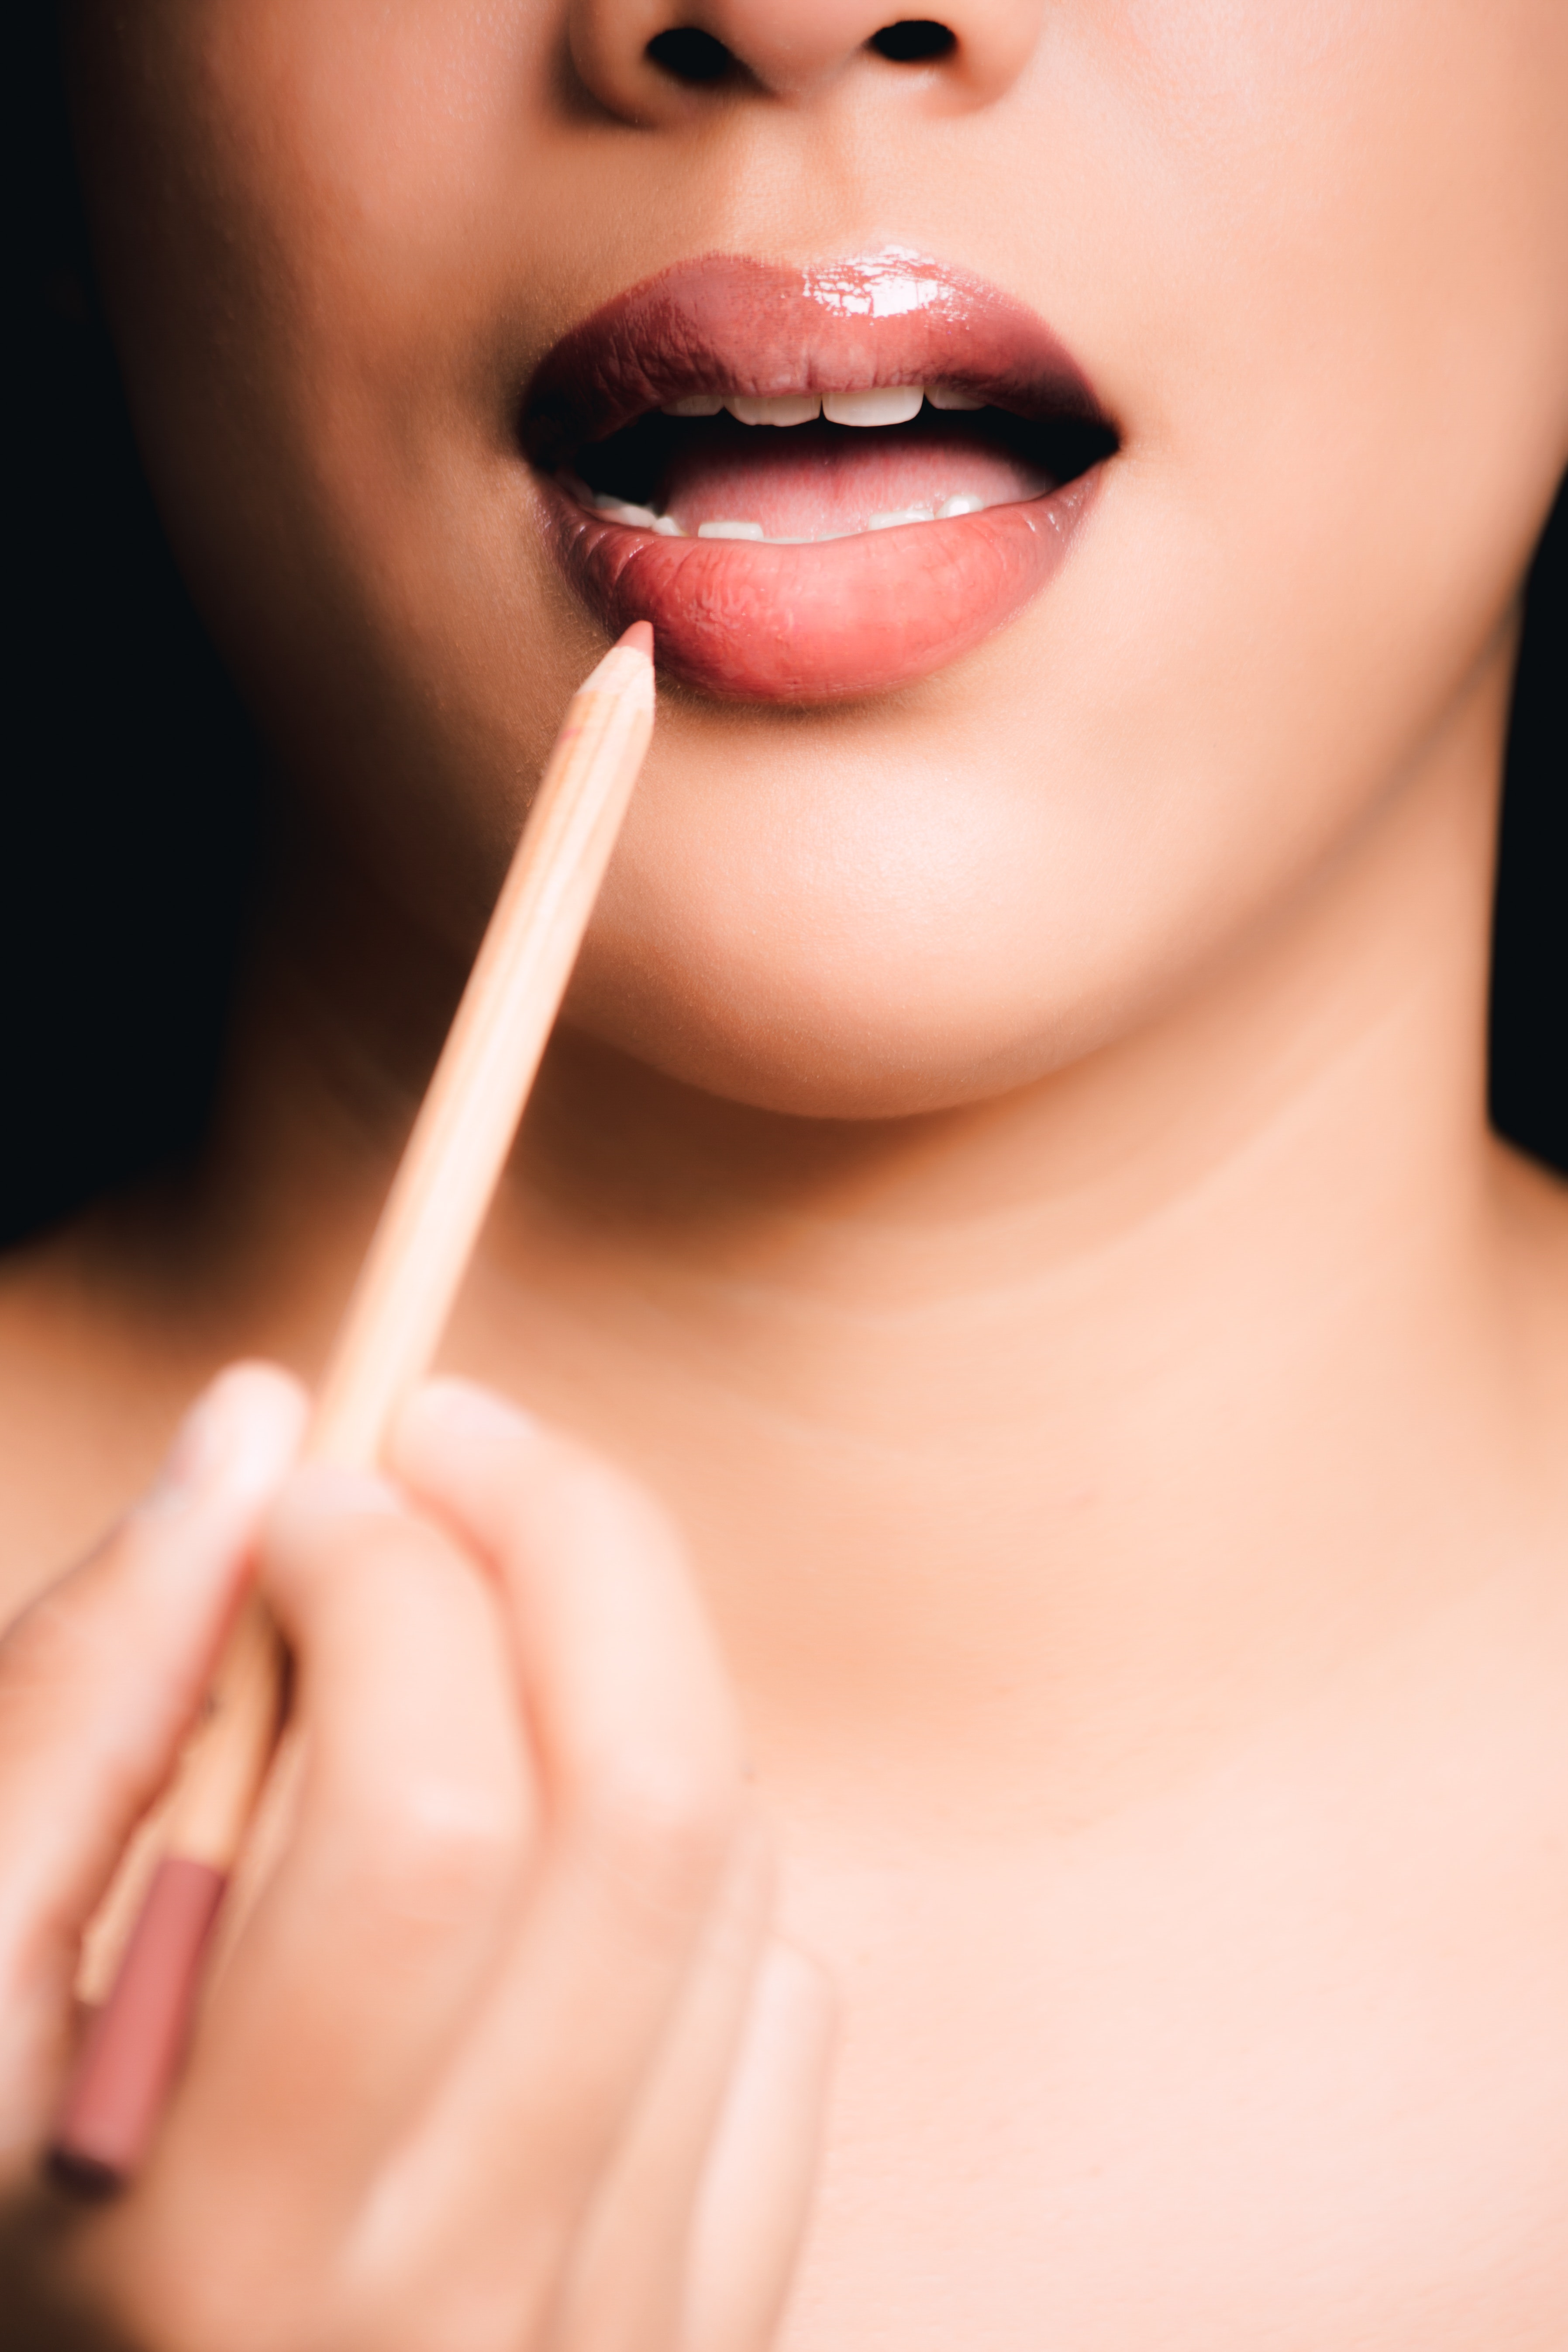 Woman Lipstick Pencil, Mouth, Young, Woman, Teeth, HQ Photo